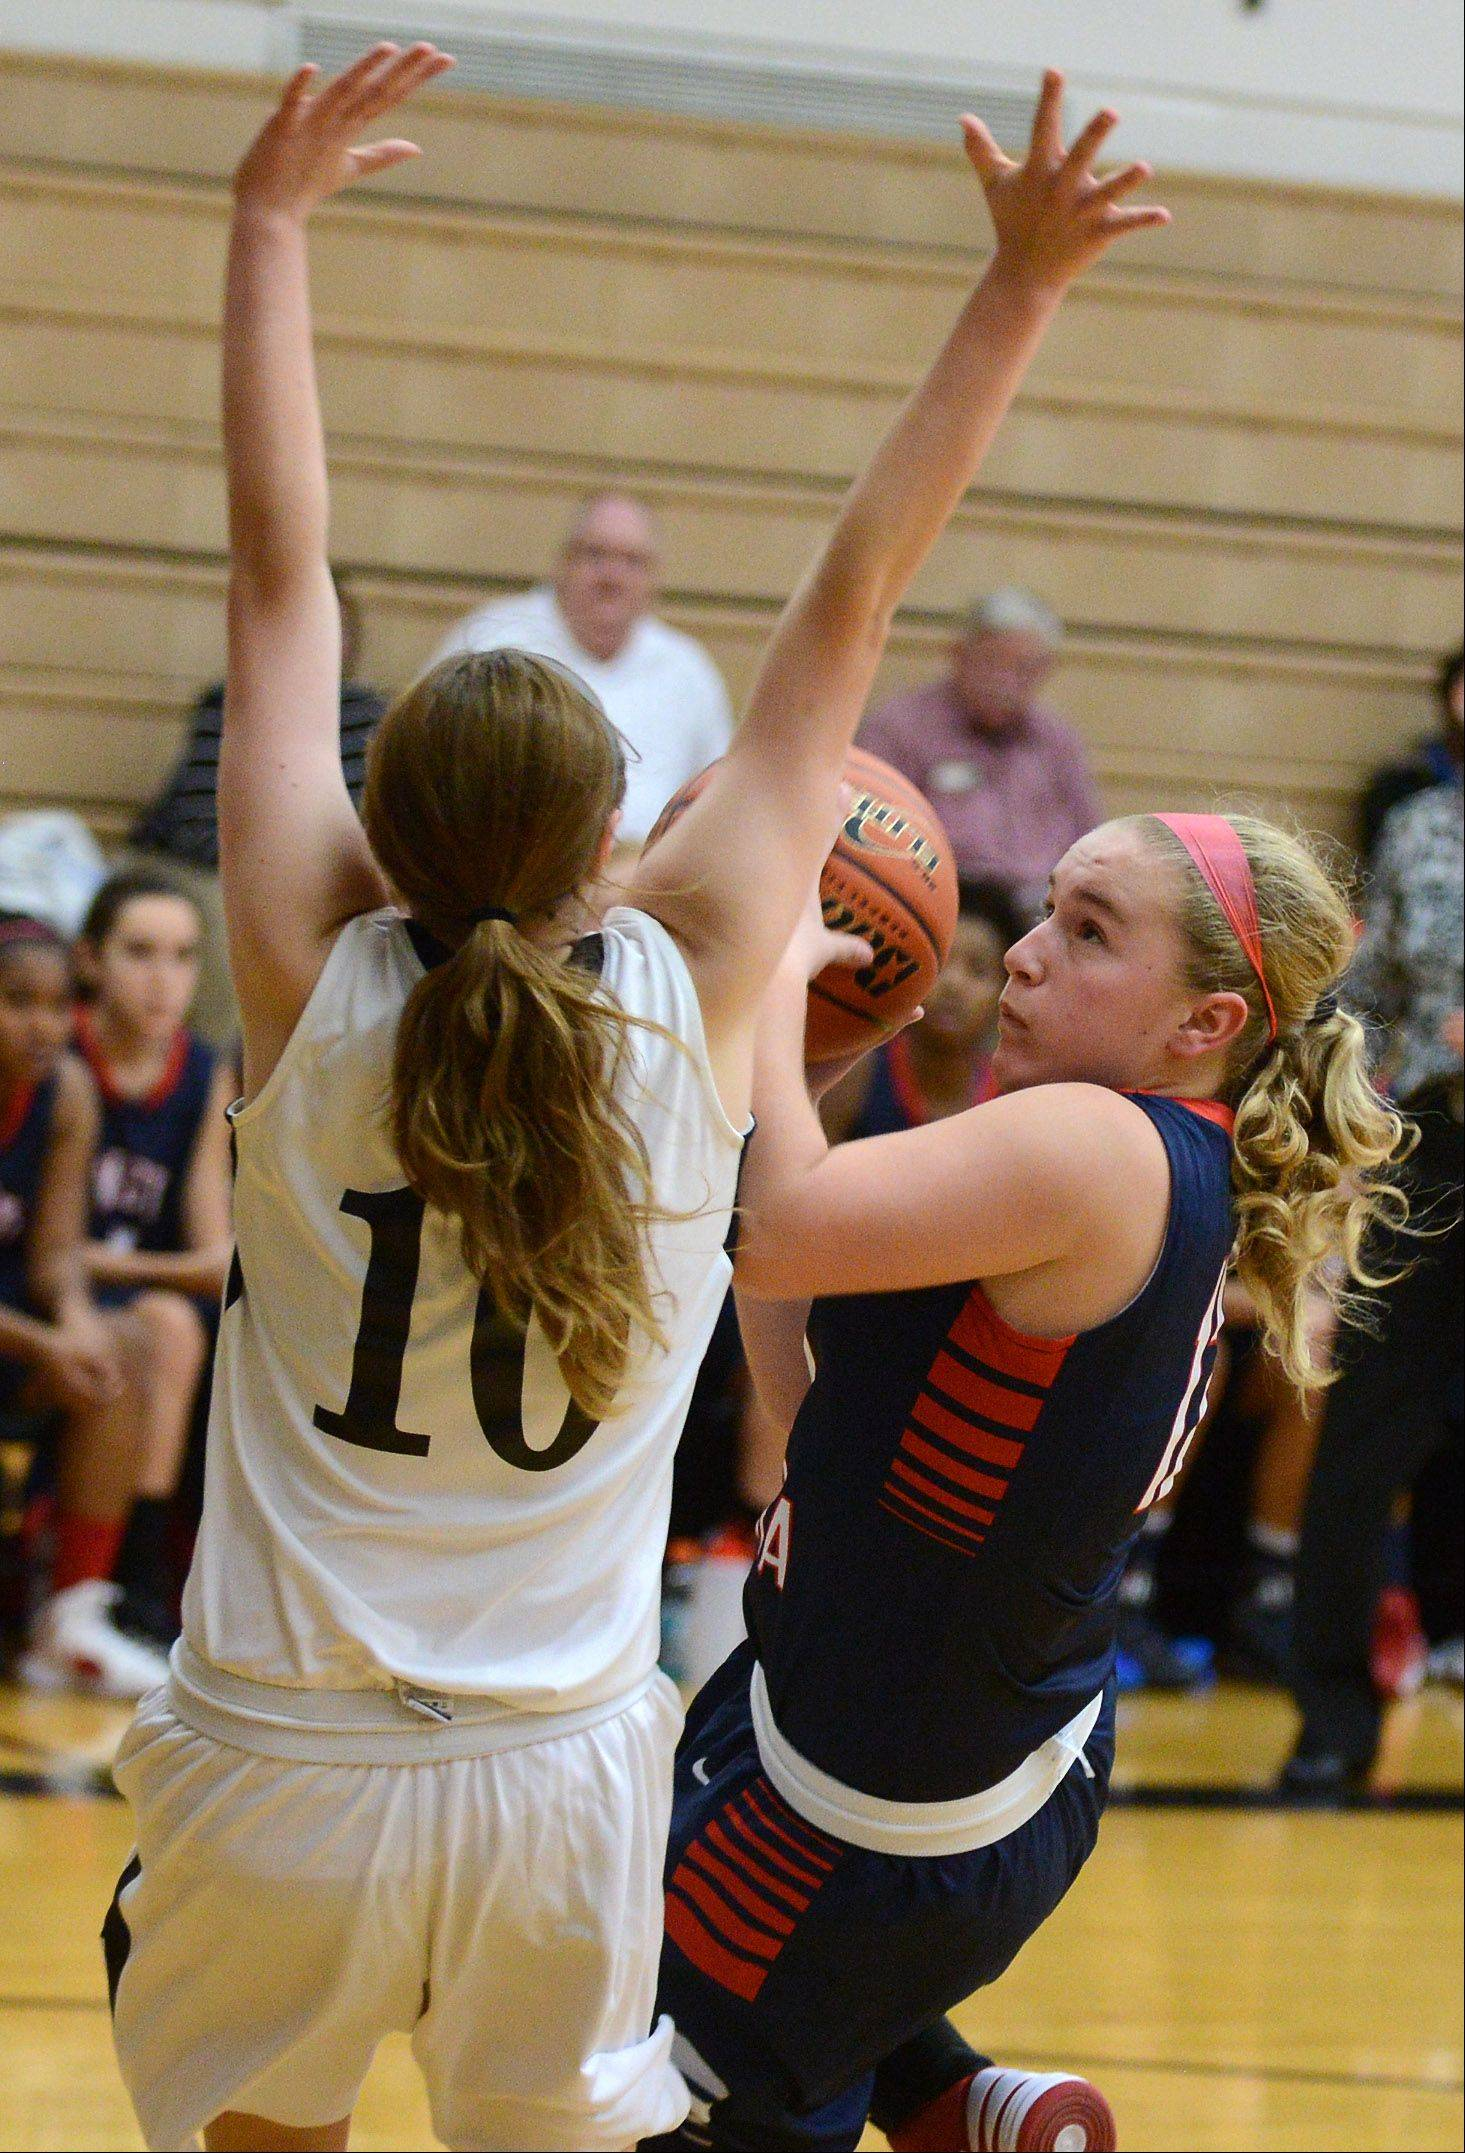 West Aurora's Carley Frauenhoff (12) puts up a shot as she's falling down while defense by Kaneland's Katie Brinkman (10) during Thursday's game in Maple Park.